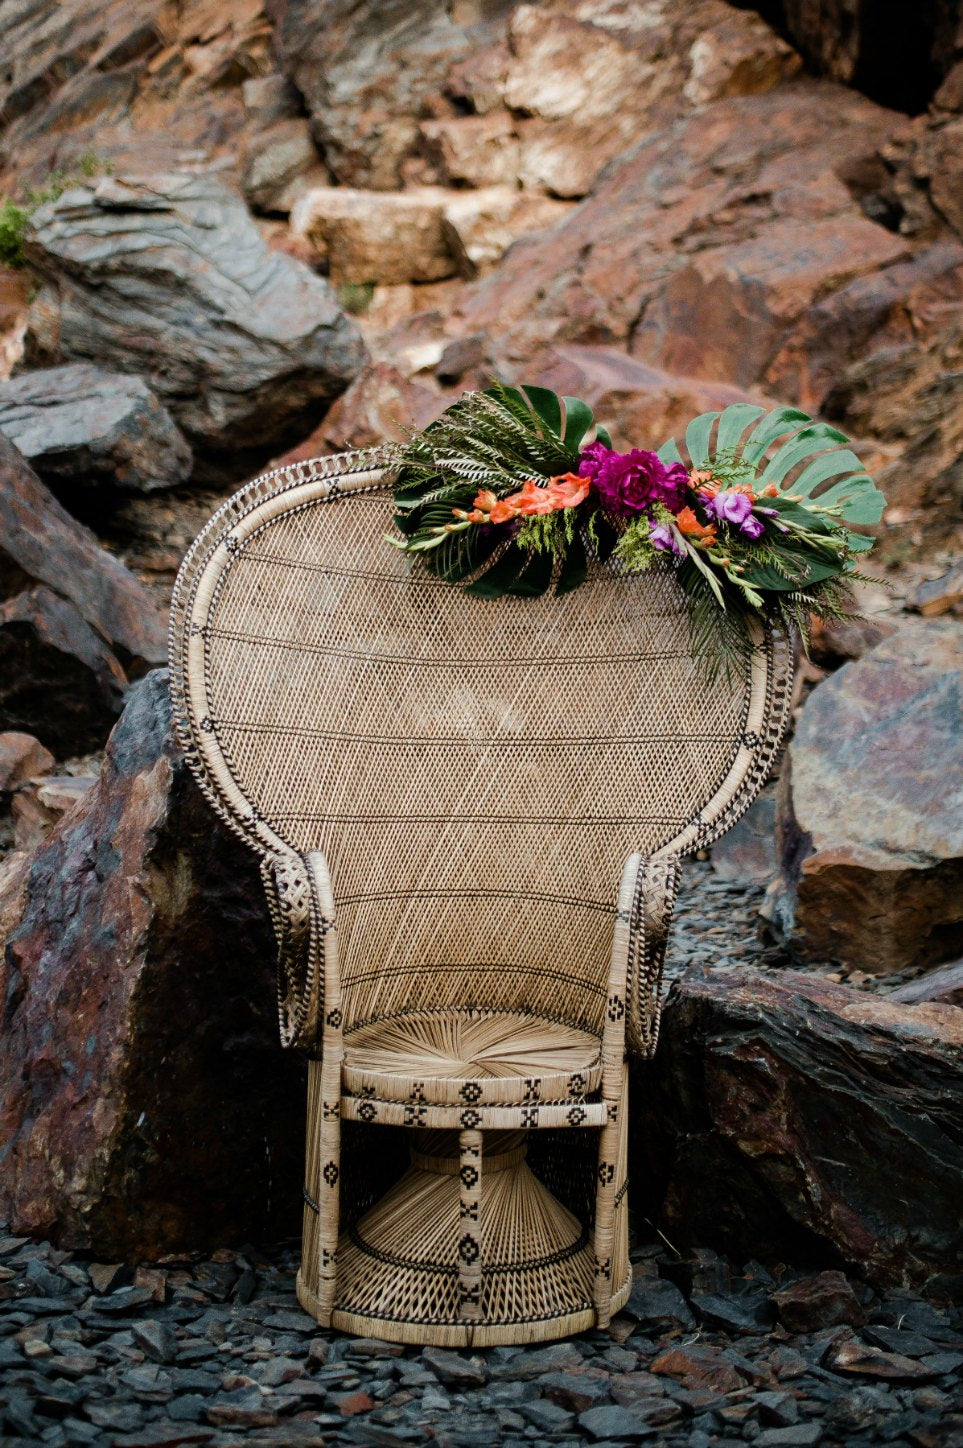 Peacock chair with floral decor in mountains